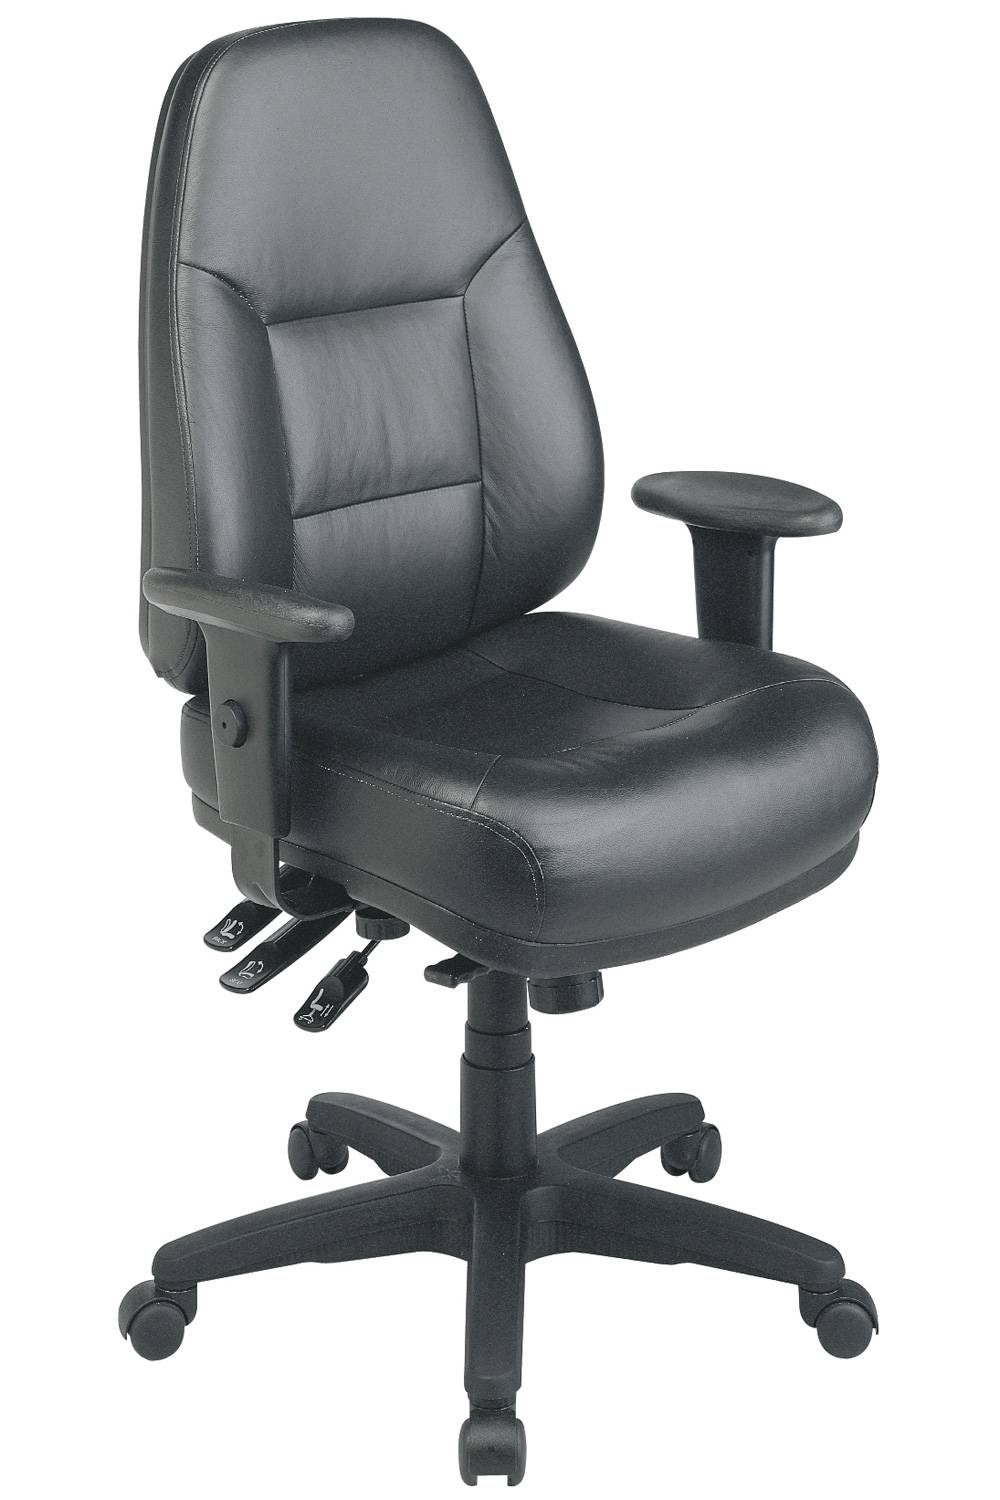 Deluxe Multi Function High Back Black Eco Leather Chair With Ratchet Back And 2 Way Adjustable